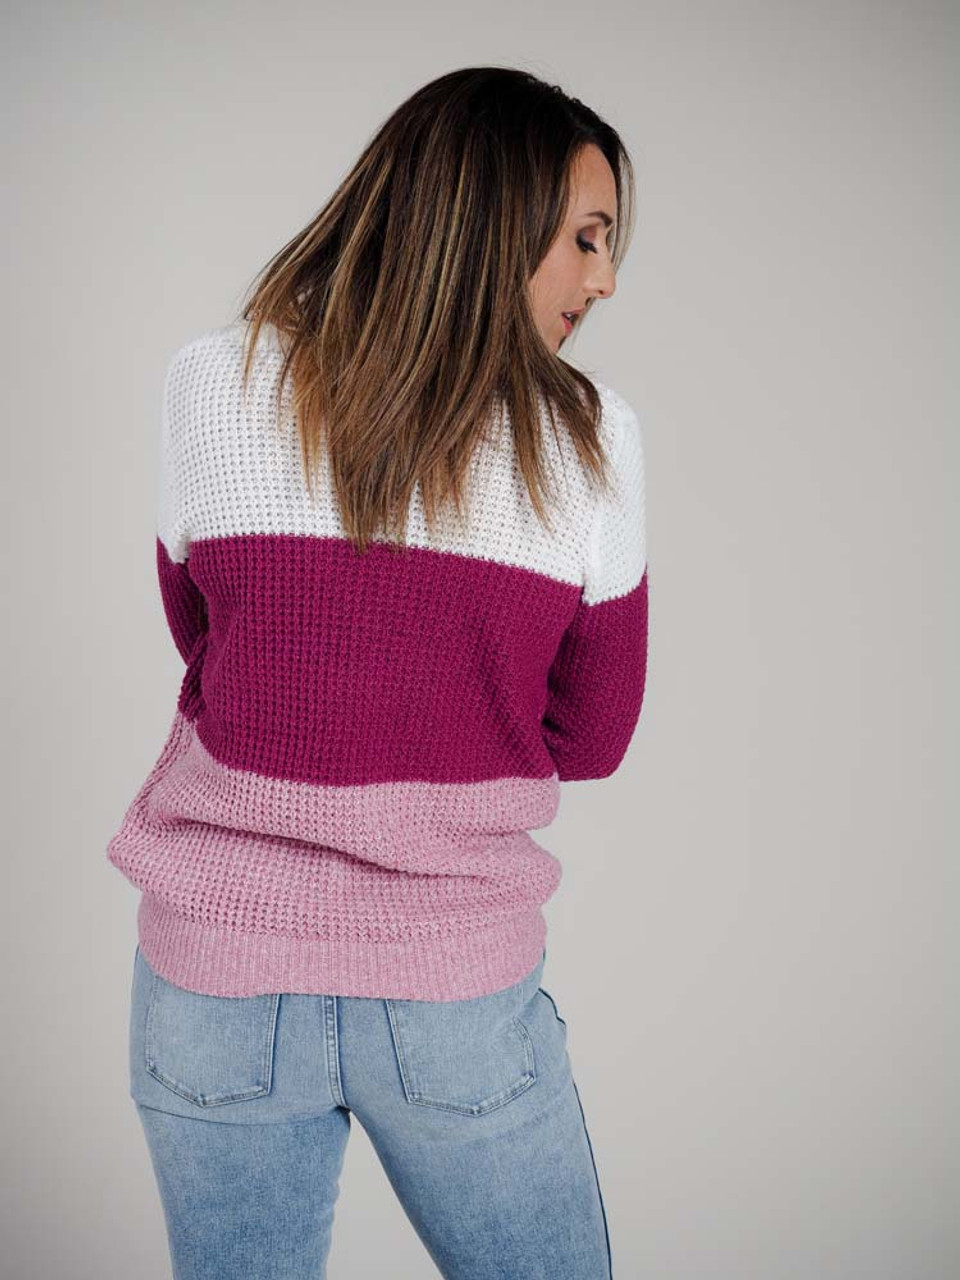 Lightweight loose knit sweater in soft bright white, magenta, and rose with long sleeves and crew neck